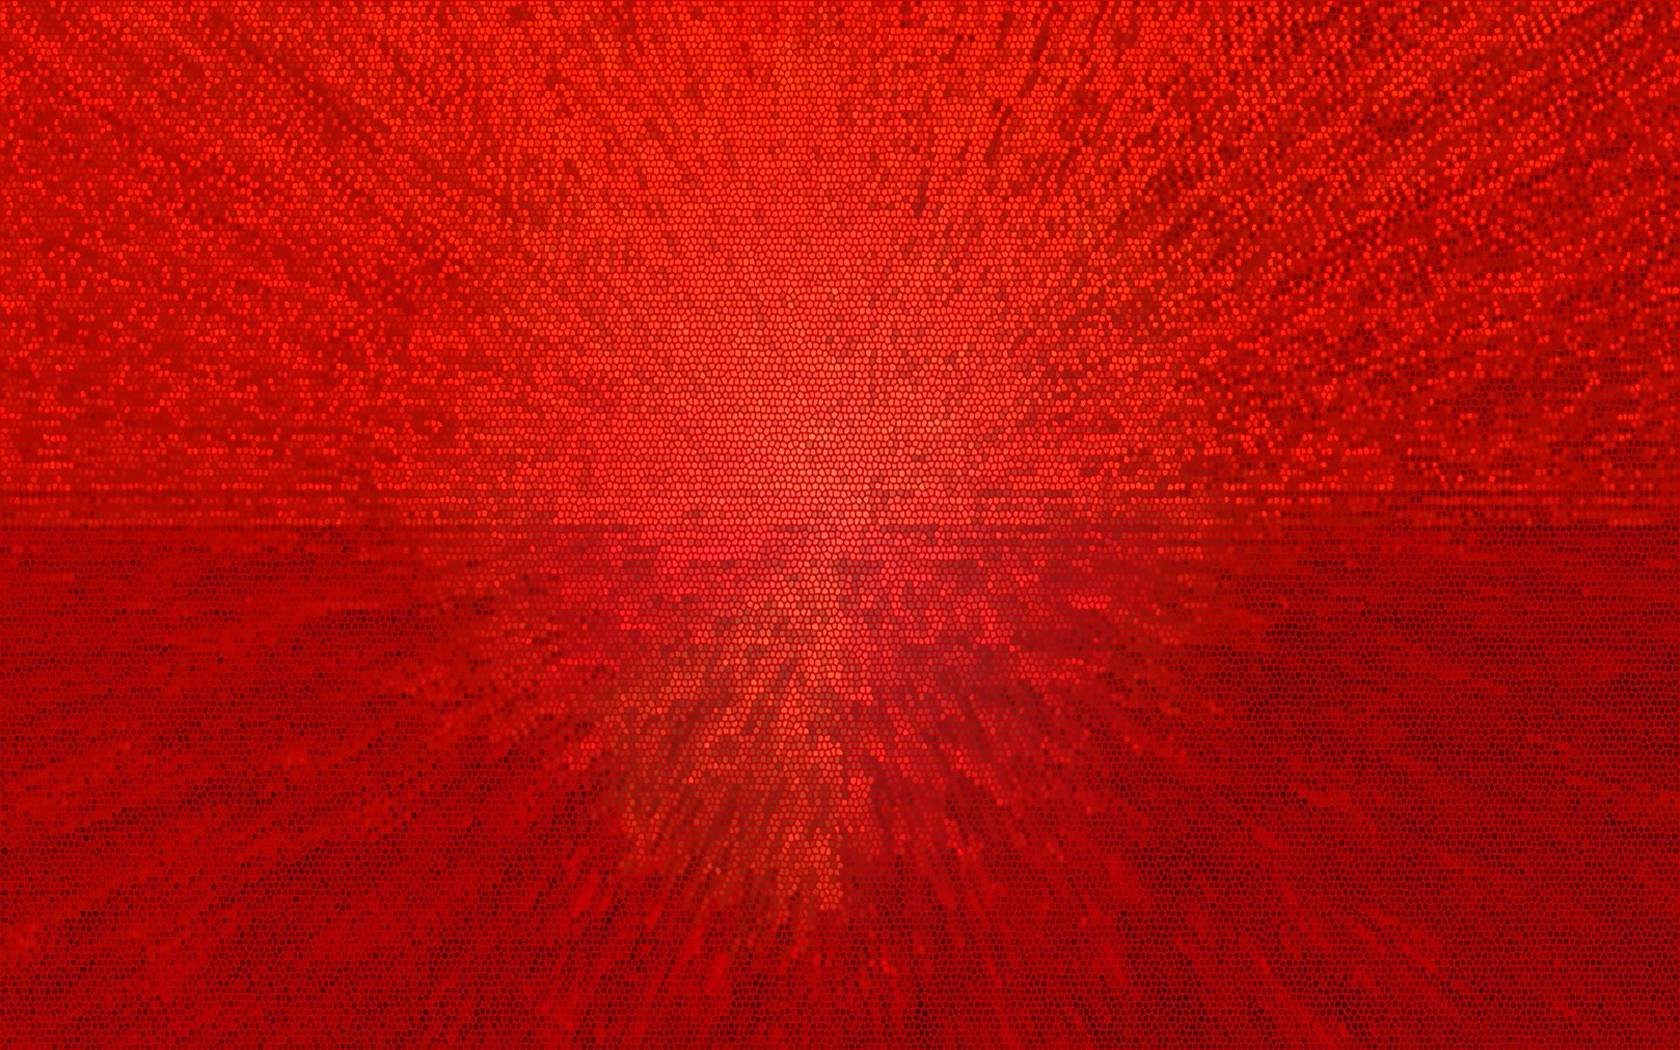 red backgrounds wallpaper cave